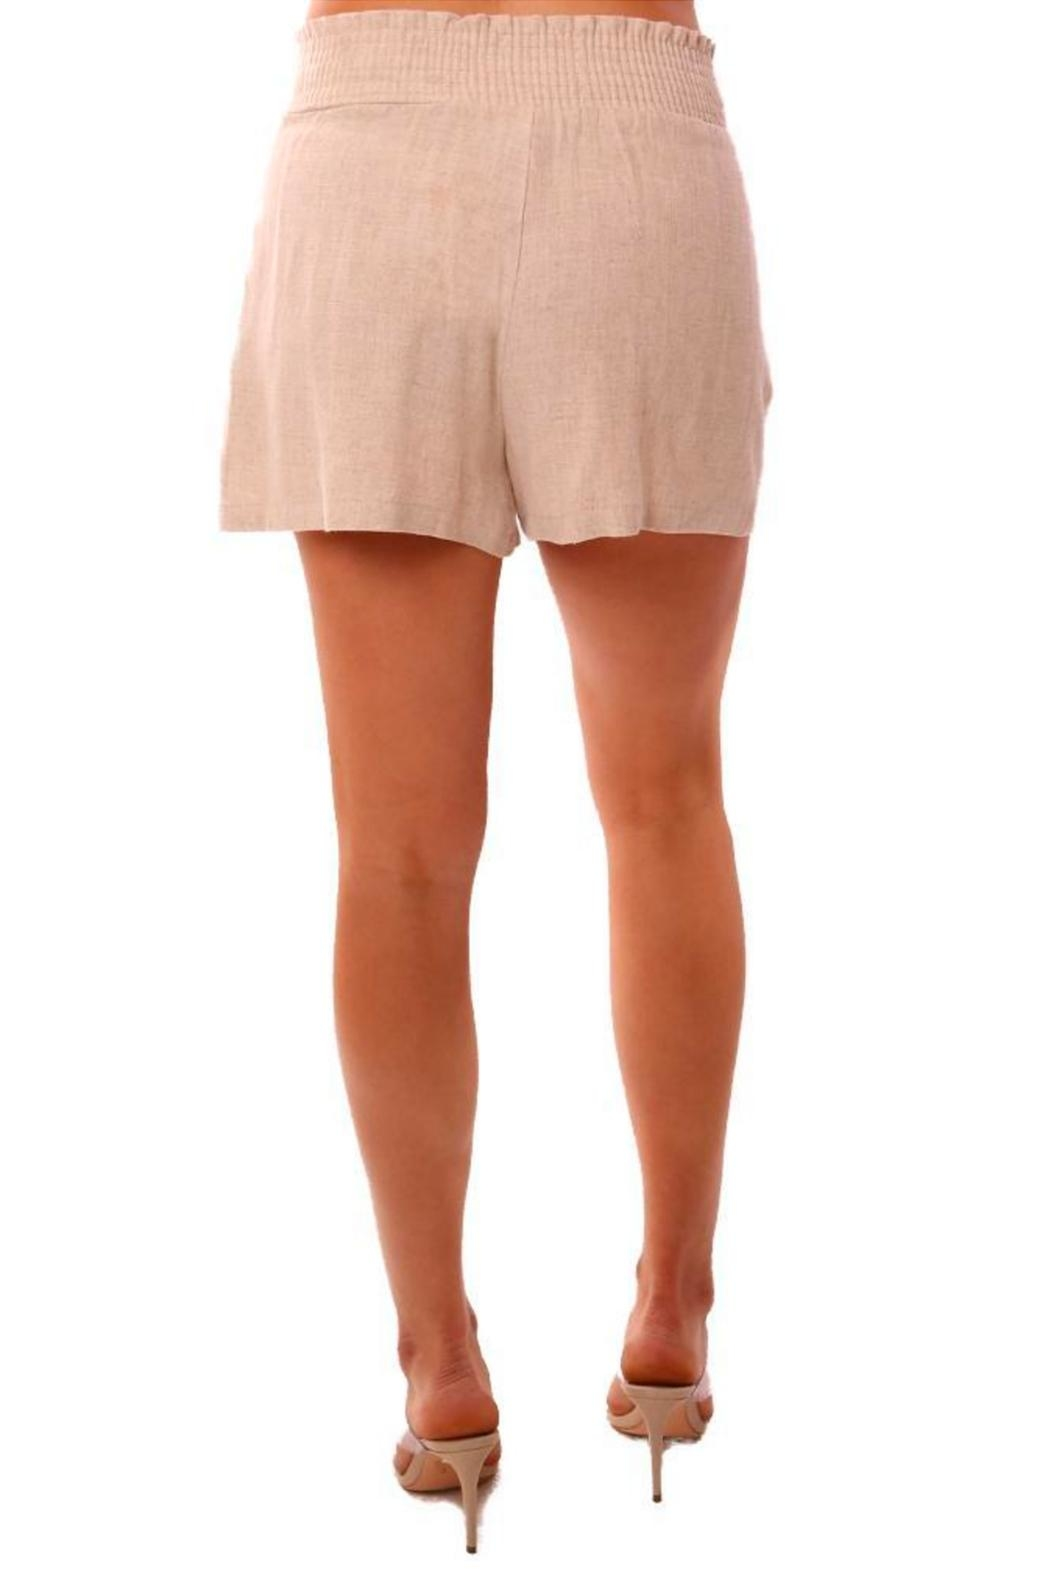 Veronica M Smocked Linen Shorts - Back Cropped Image